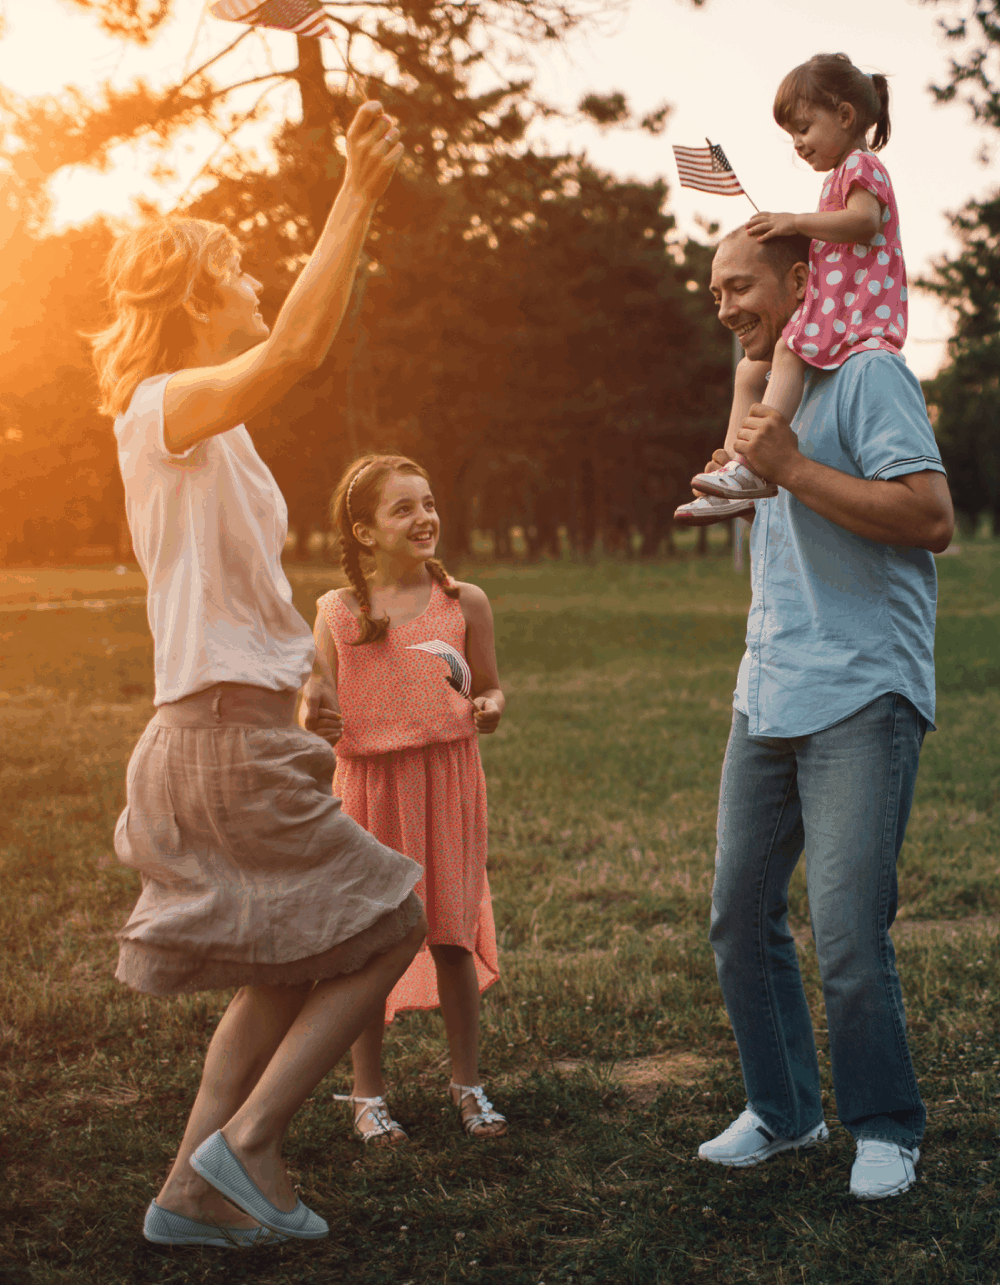 Healthy family enjoying time together.